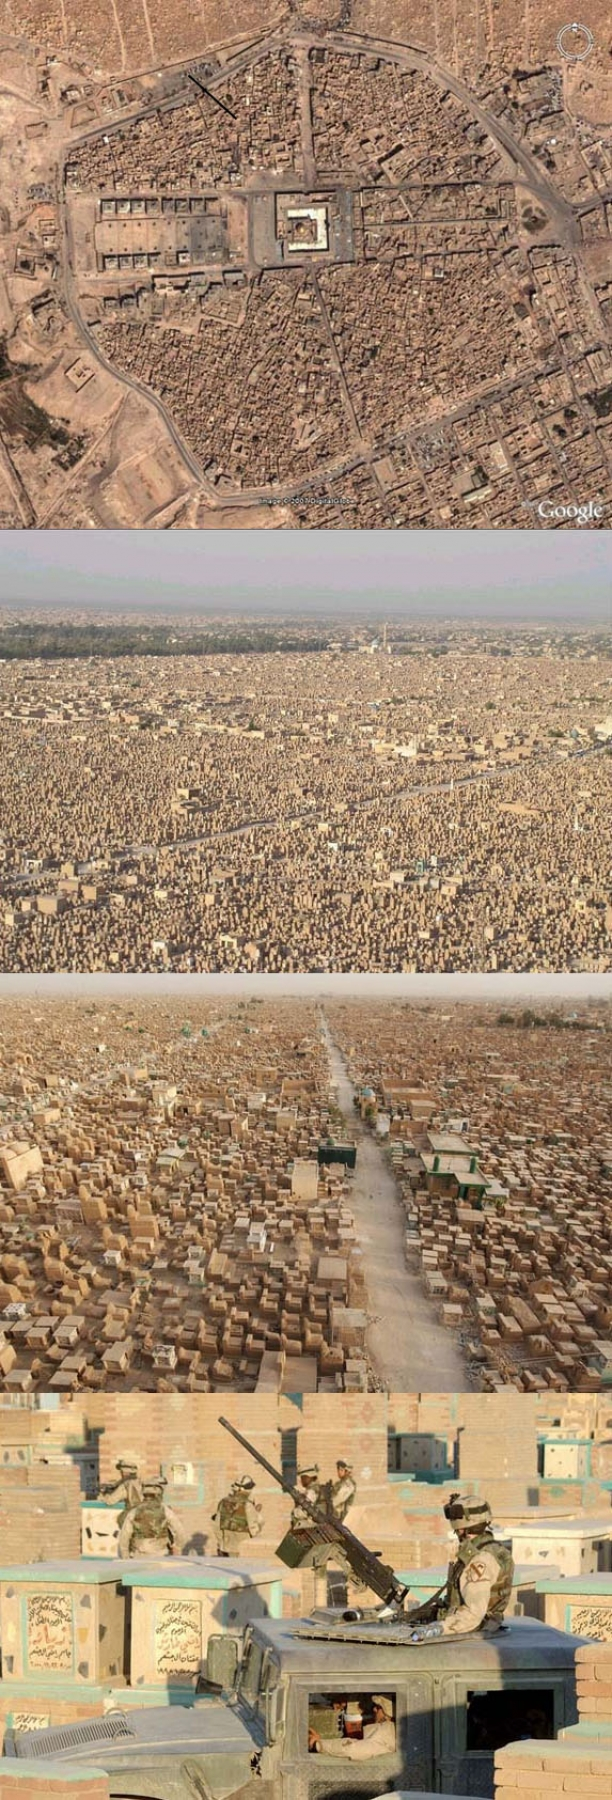 On Google Maps, You'd Think This Is A Large City In The Desert. But Zoom In And...WOW